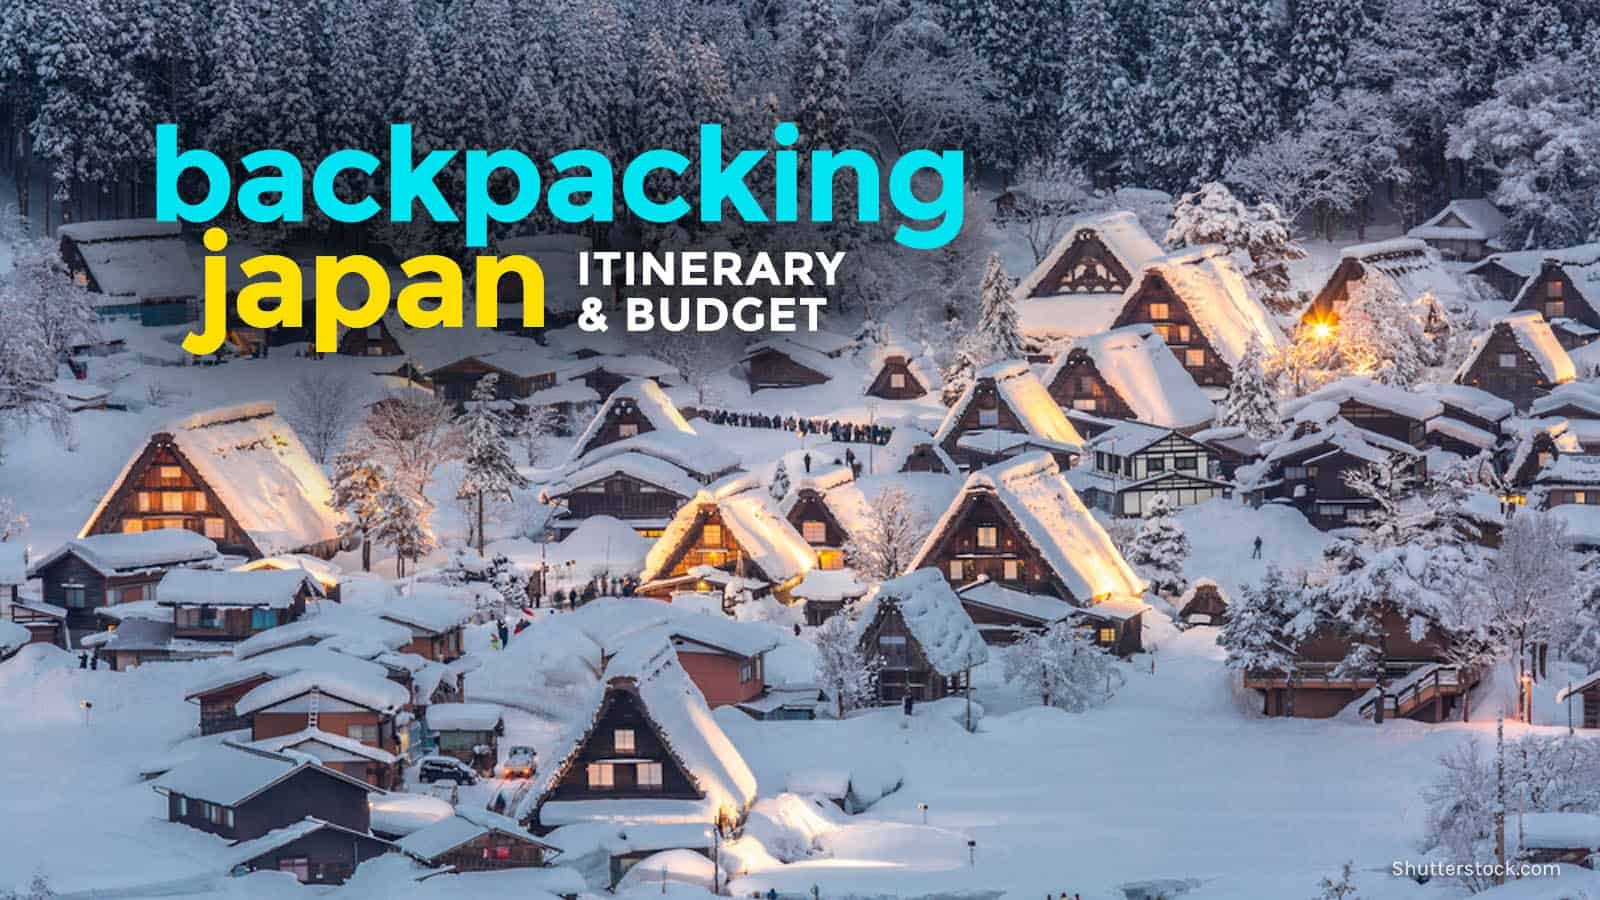 Deco Bureau Japon Takayama Travel Guide Budget Itinerary Things To Do The